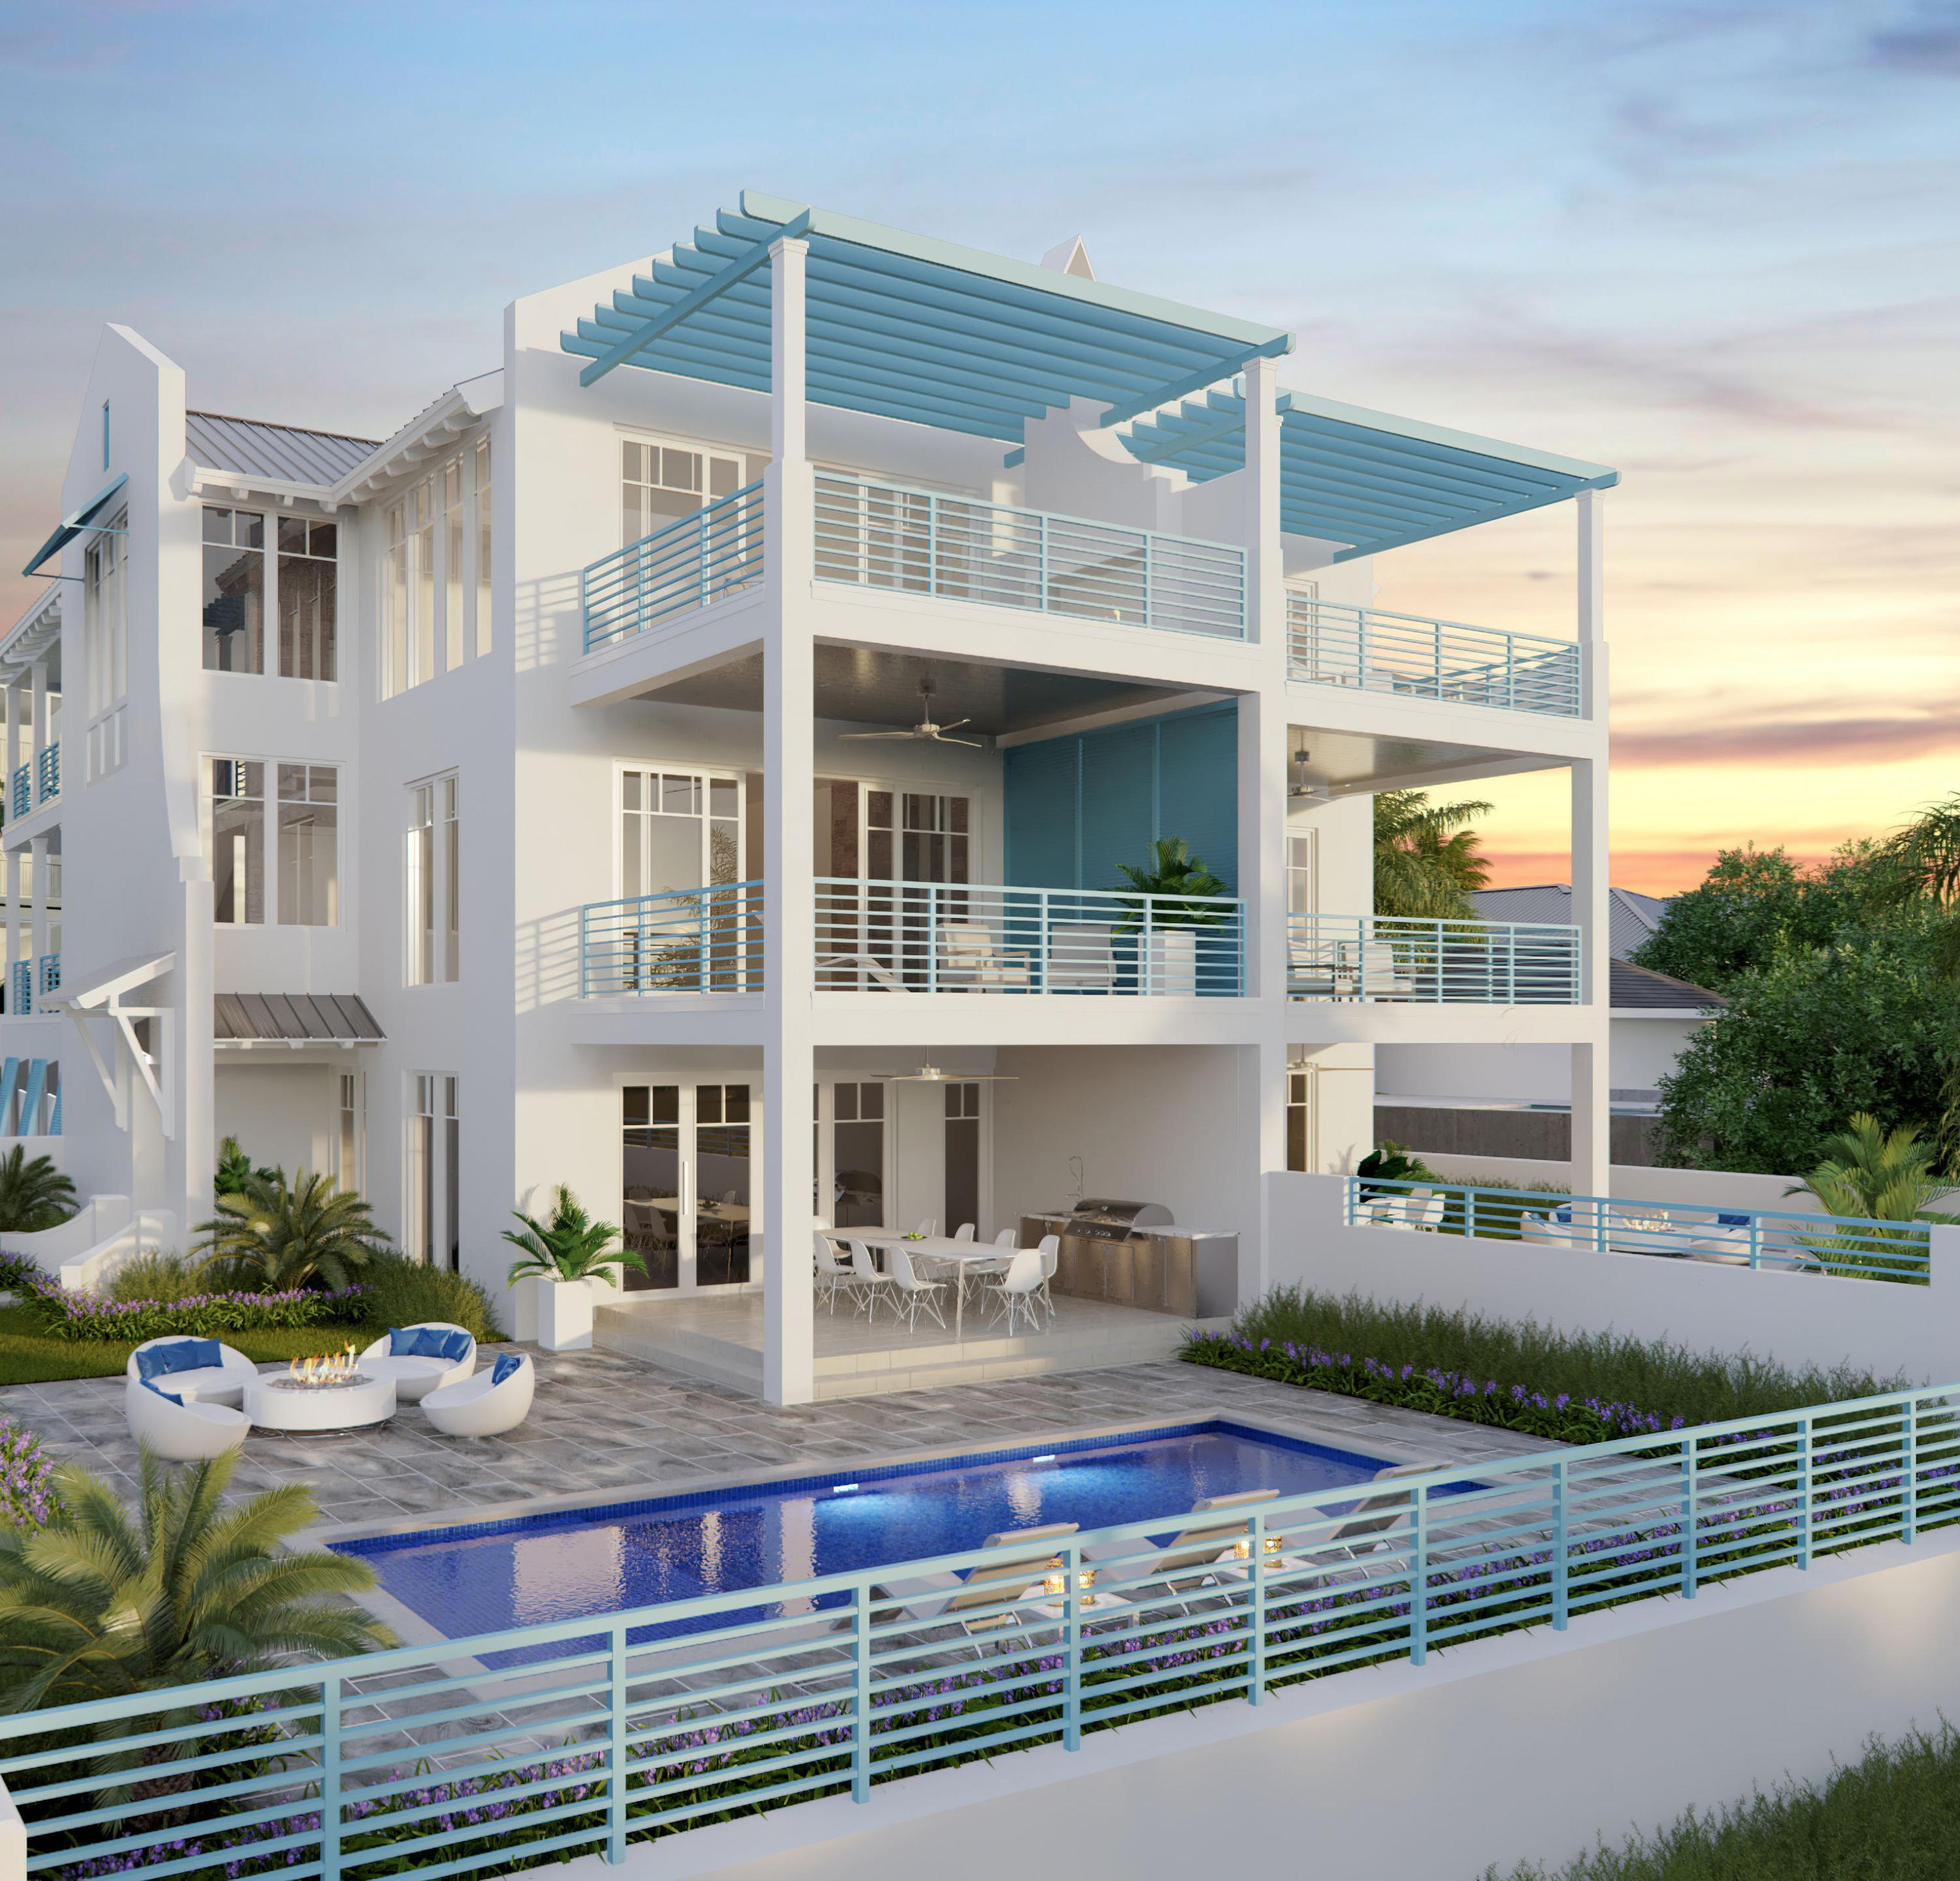 This might be the most interesting and compelling project ever done in Juno Beach. Literally the highest elevation you can find in South Florida. These 2 gorgeous town homes sit on 33 ft above seas level at pool level. Top Floor will be at over 60 ft elevation with phenomenal  unobstructed blue ocean views of Juno Beach. Beach access steps away make this better than any  condo in the area. Being a Town Home, with private pool  and the privacy a Town House has over a condo makes this a very unique and special place to call home. With almost 4,000 sq ft of ac space all with panoramic ocean views, 4 bedrooms, 4 1/2 baths, high end finishes this property  will go fast. Delivery in Early 2022 coming out of the ground any day. Call for a private meeting and viewing. Only 2 units to be built.